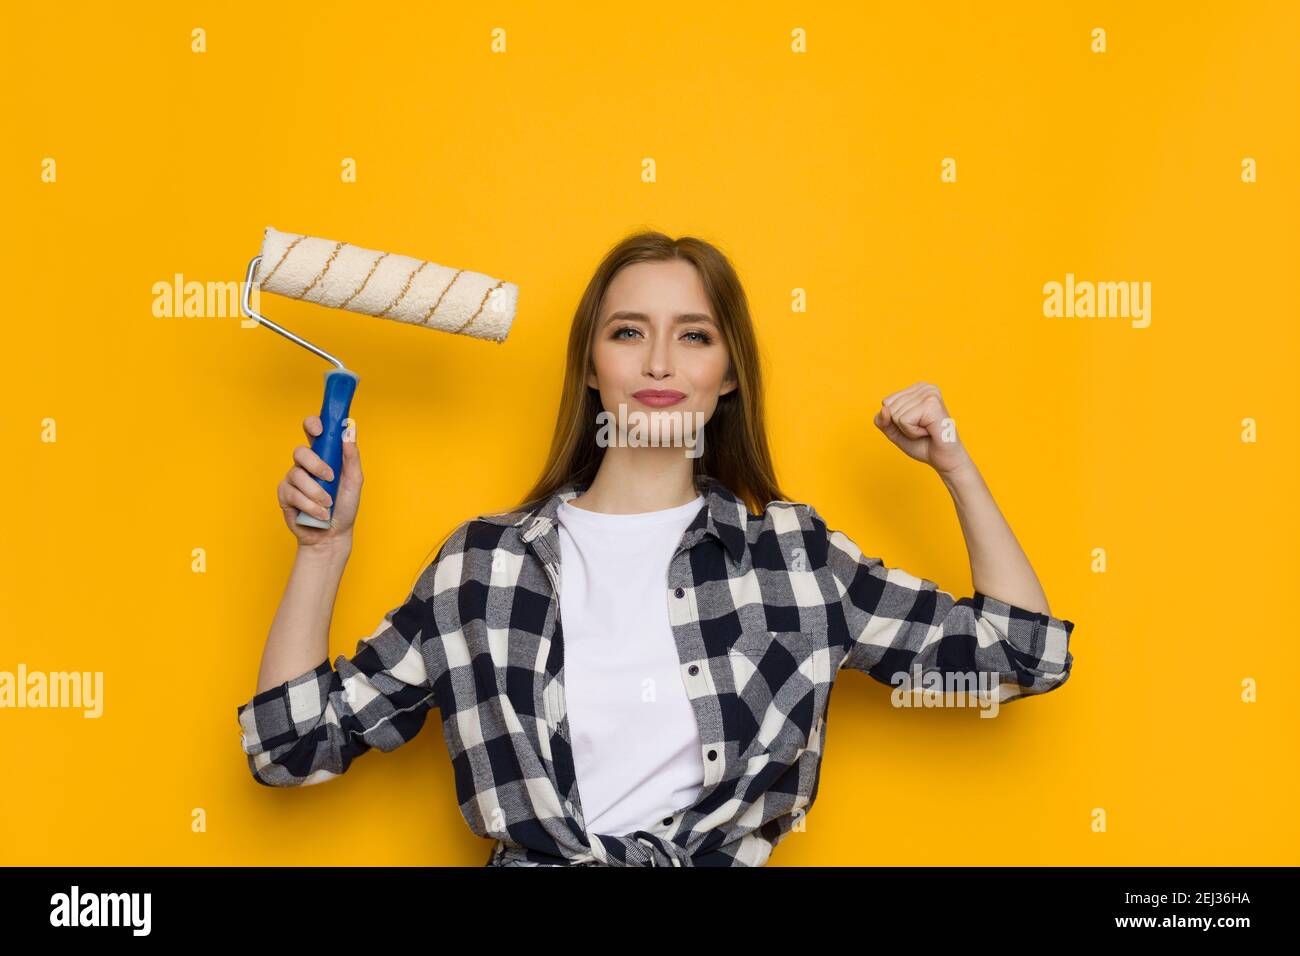 Confident casual young woman in lumberjack shirt is holding paint roller in one hand and other up with fist clenched. Waist up studio shot on yellow b Stock Photo